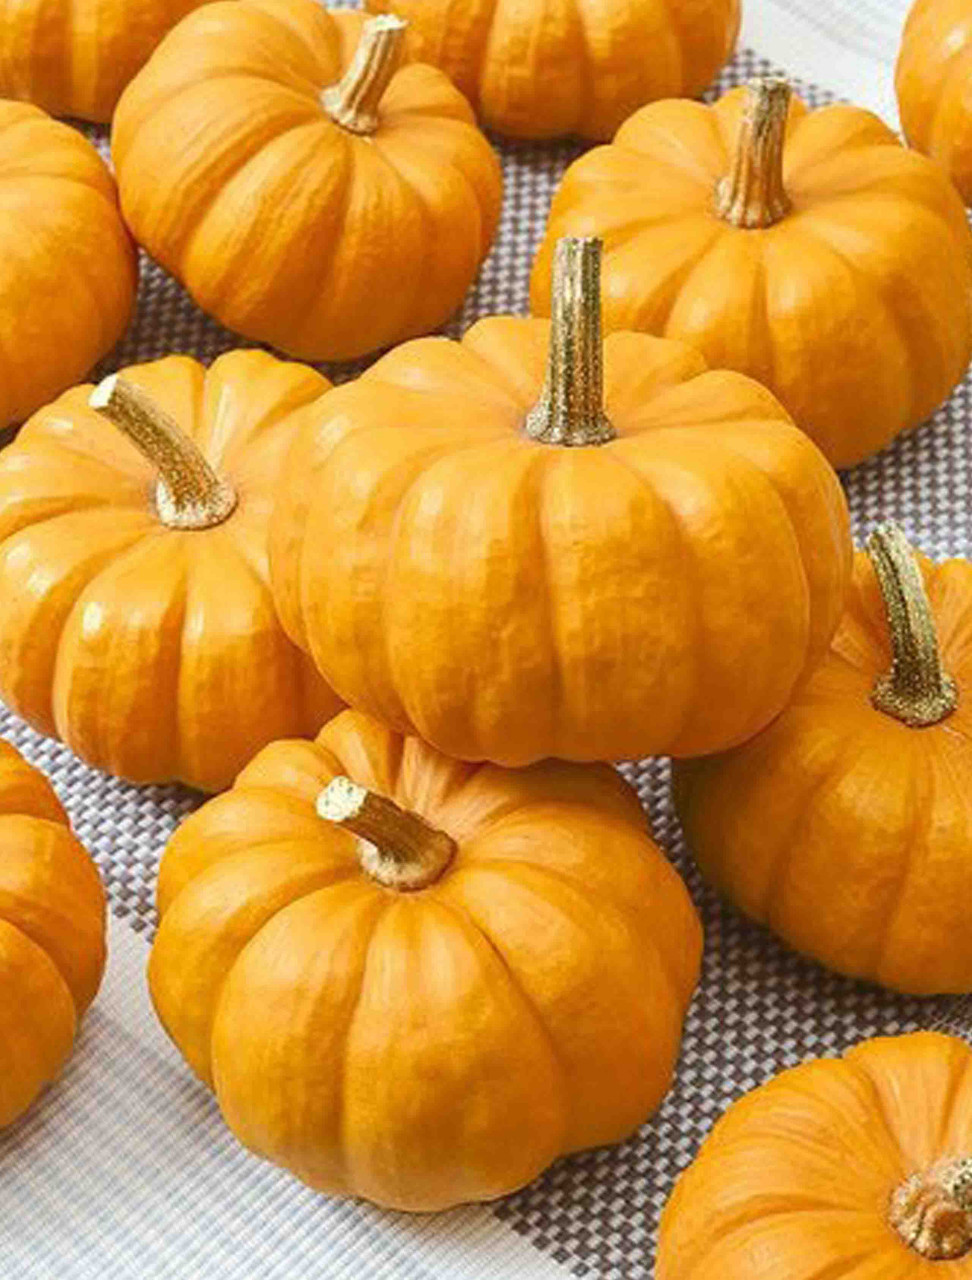 Jack Be Little Vegetable Seeds Heirloom select QTY very small Pumpkin